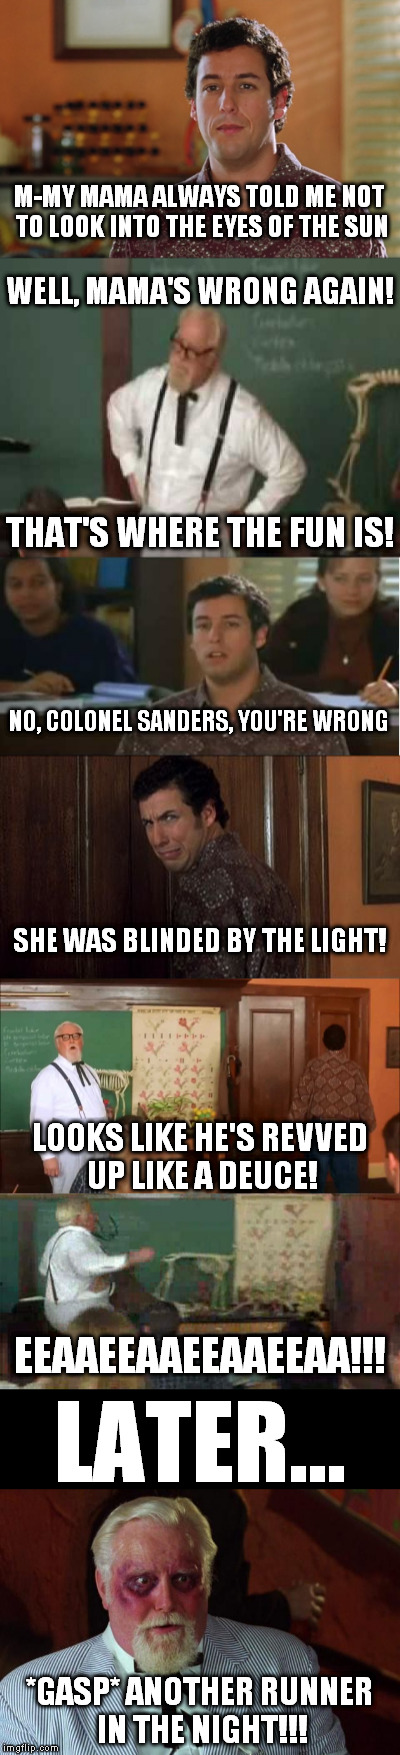 One fine day in the classroom... | M-MY MAMA ALWAYS TOLD ME NOT TO LOOK INTO THE EYES OF THE SUN *GASP* ANOTHER RUNNER IN THE NIGHT!!! LATER... EEAAEEAAEEAAEEAA!!! WELL, MAMA' | image tagged in waterboy,memes,blinded by the light,colonel sanders,adam sandler | made w/ Imgflip meme maker